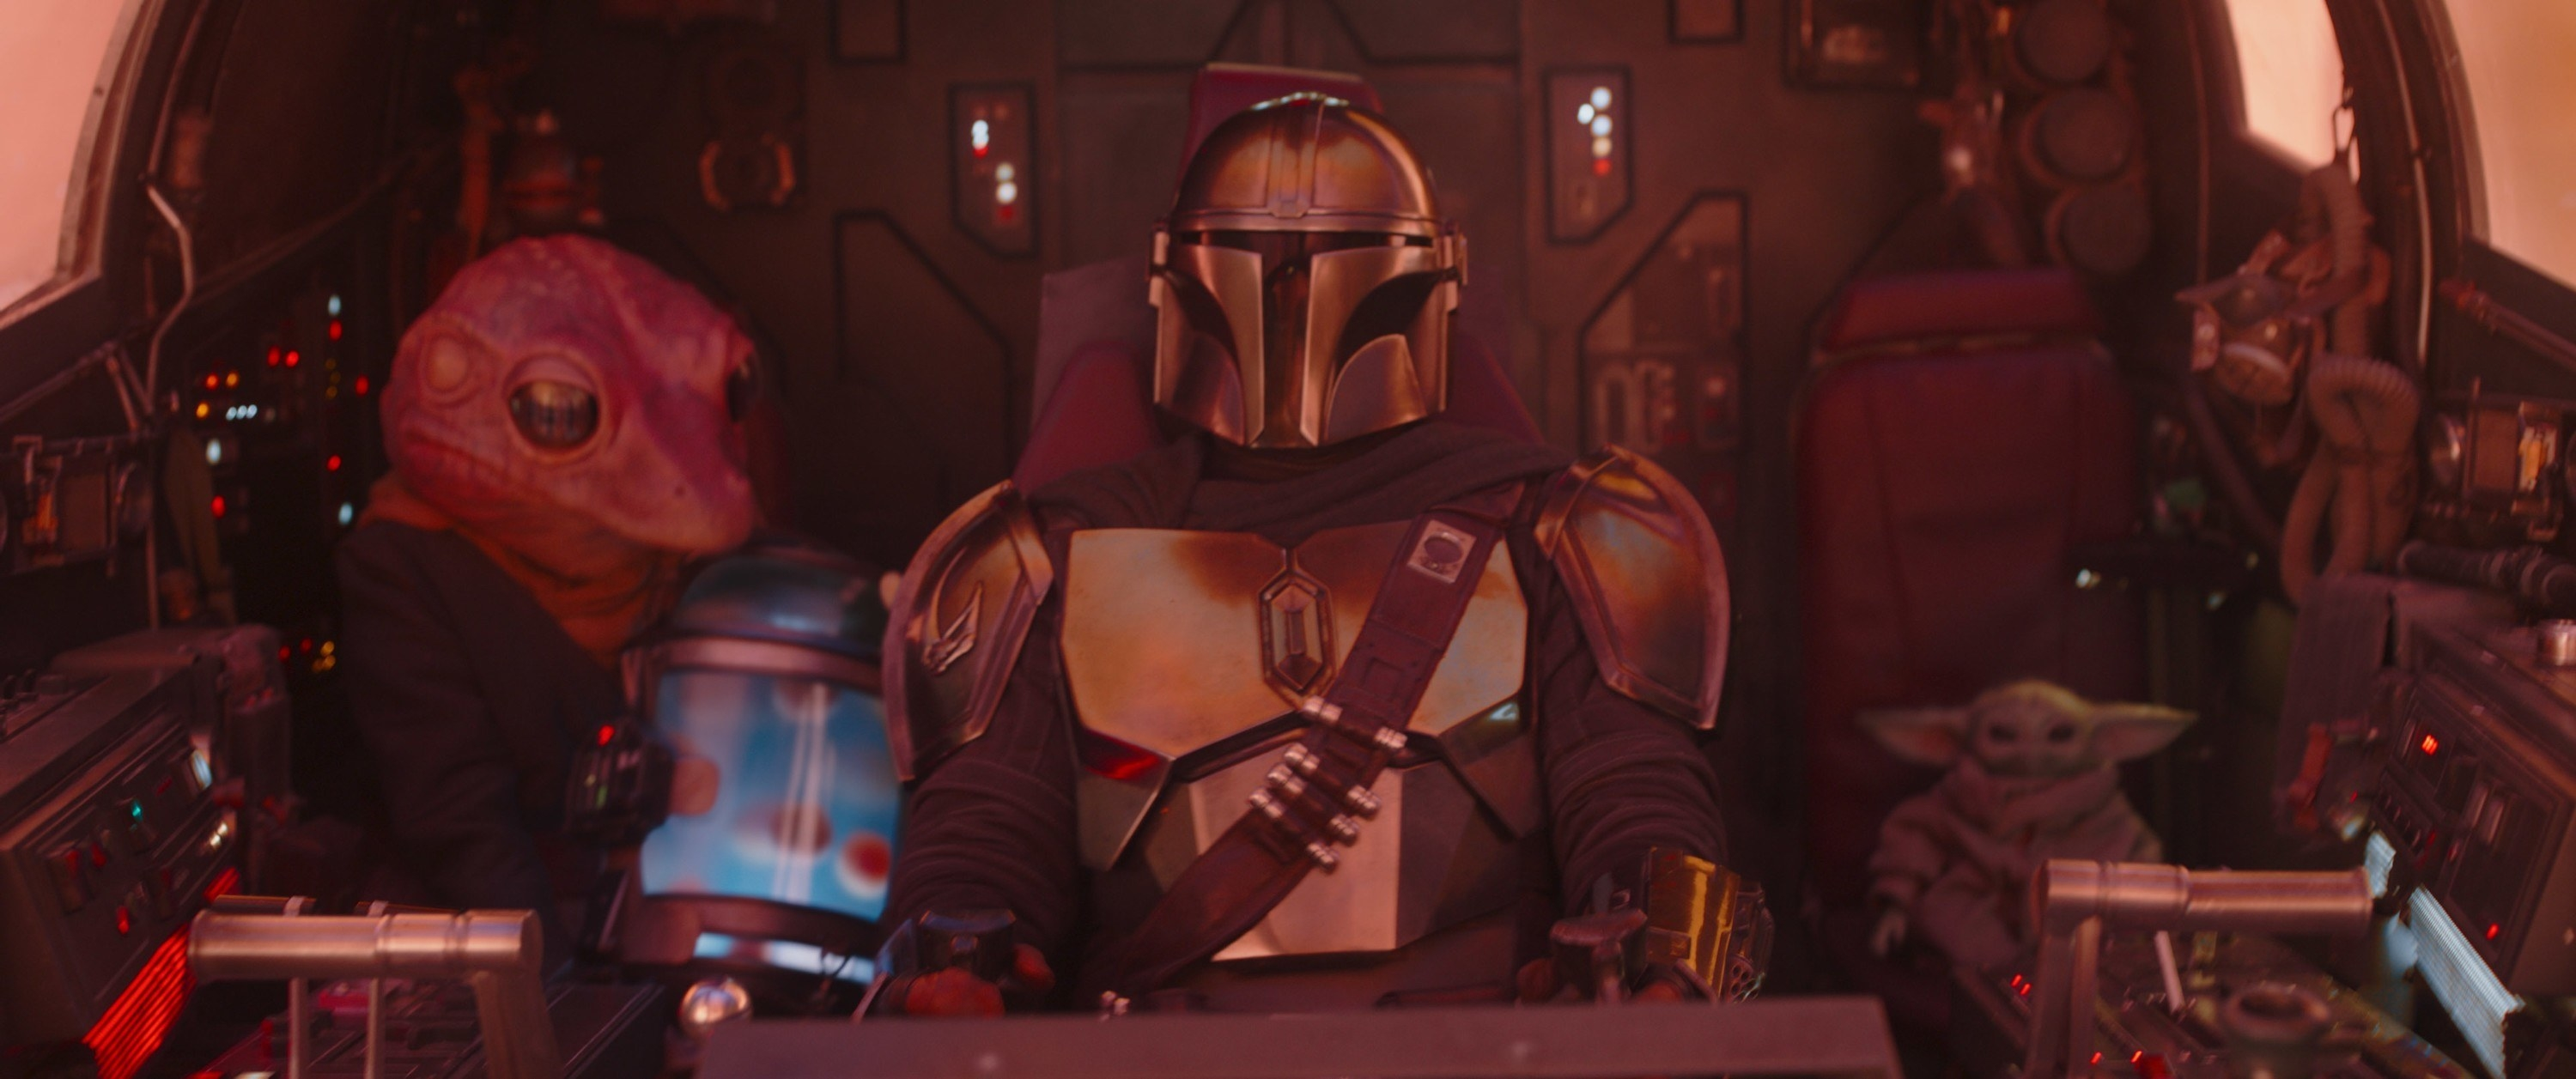 The Mandalorian pilots a spacecraft, while Baby Yoda sits behind him